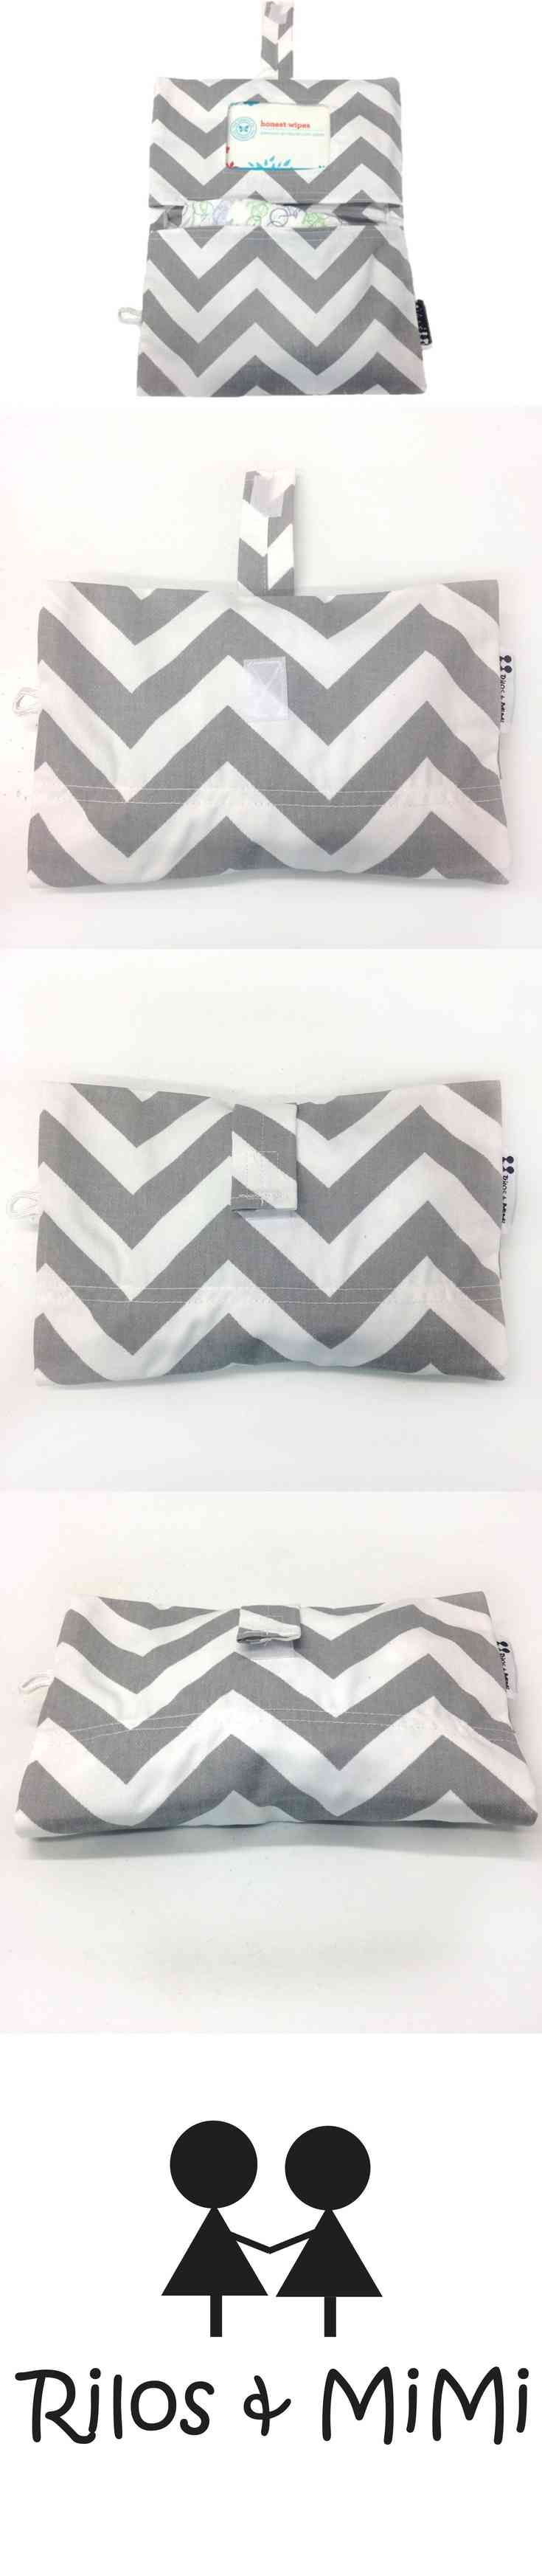 Grey and White Chevron Diaper Clutch  Keep your diapers and wipes organized with a chevron diaper clutch from Rilos & MiMi.  A diaper clutch is a great baby accessory for any parent.  A diaper clutch keeps diapers and wipes organized in your purse, diaper bag, back pack, or vehicle.   Each diaper clutch fits almost every type of travel wipes case (Huggies, Pampers, and (...) (via pushapin.com)